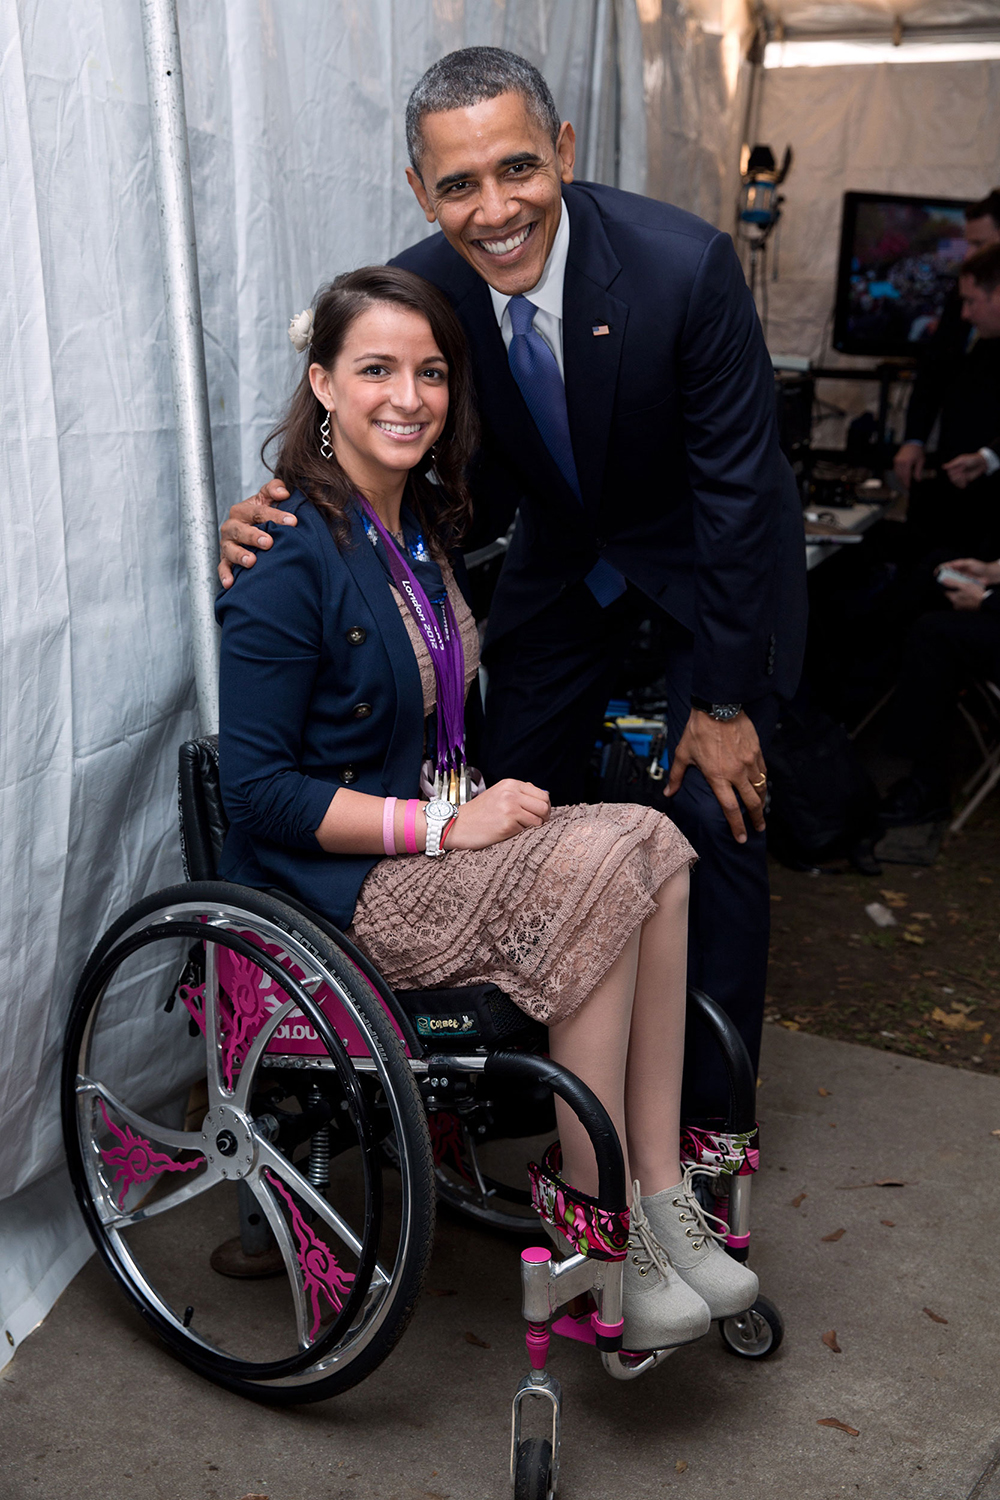 Victoria Arlen with President Obama after the 2012 London Paralympic Games